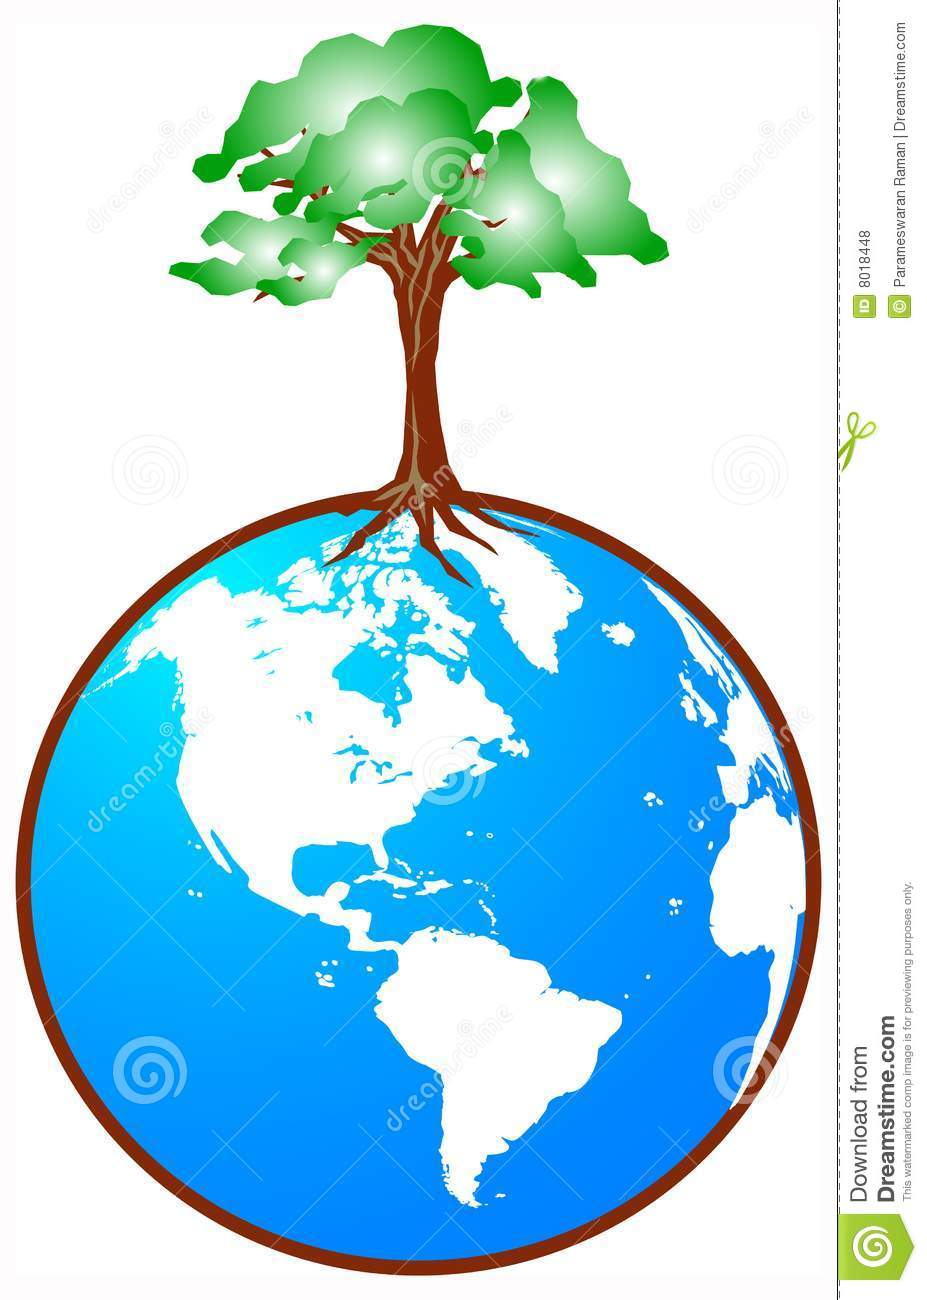 hight resolution of download globe with tree stock vector illustration of retro country 8018448